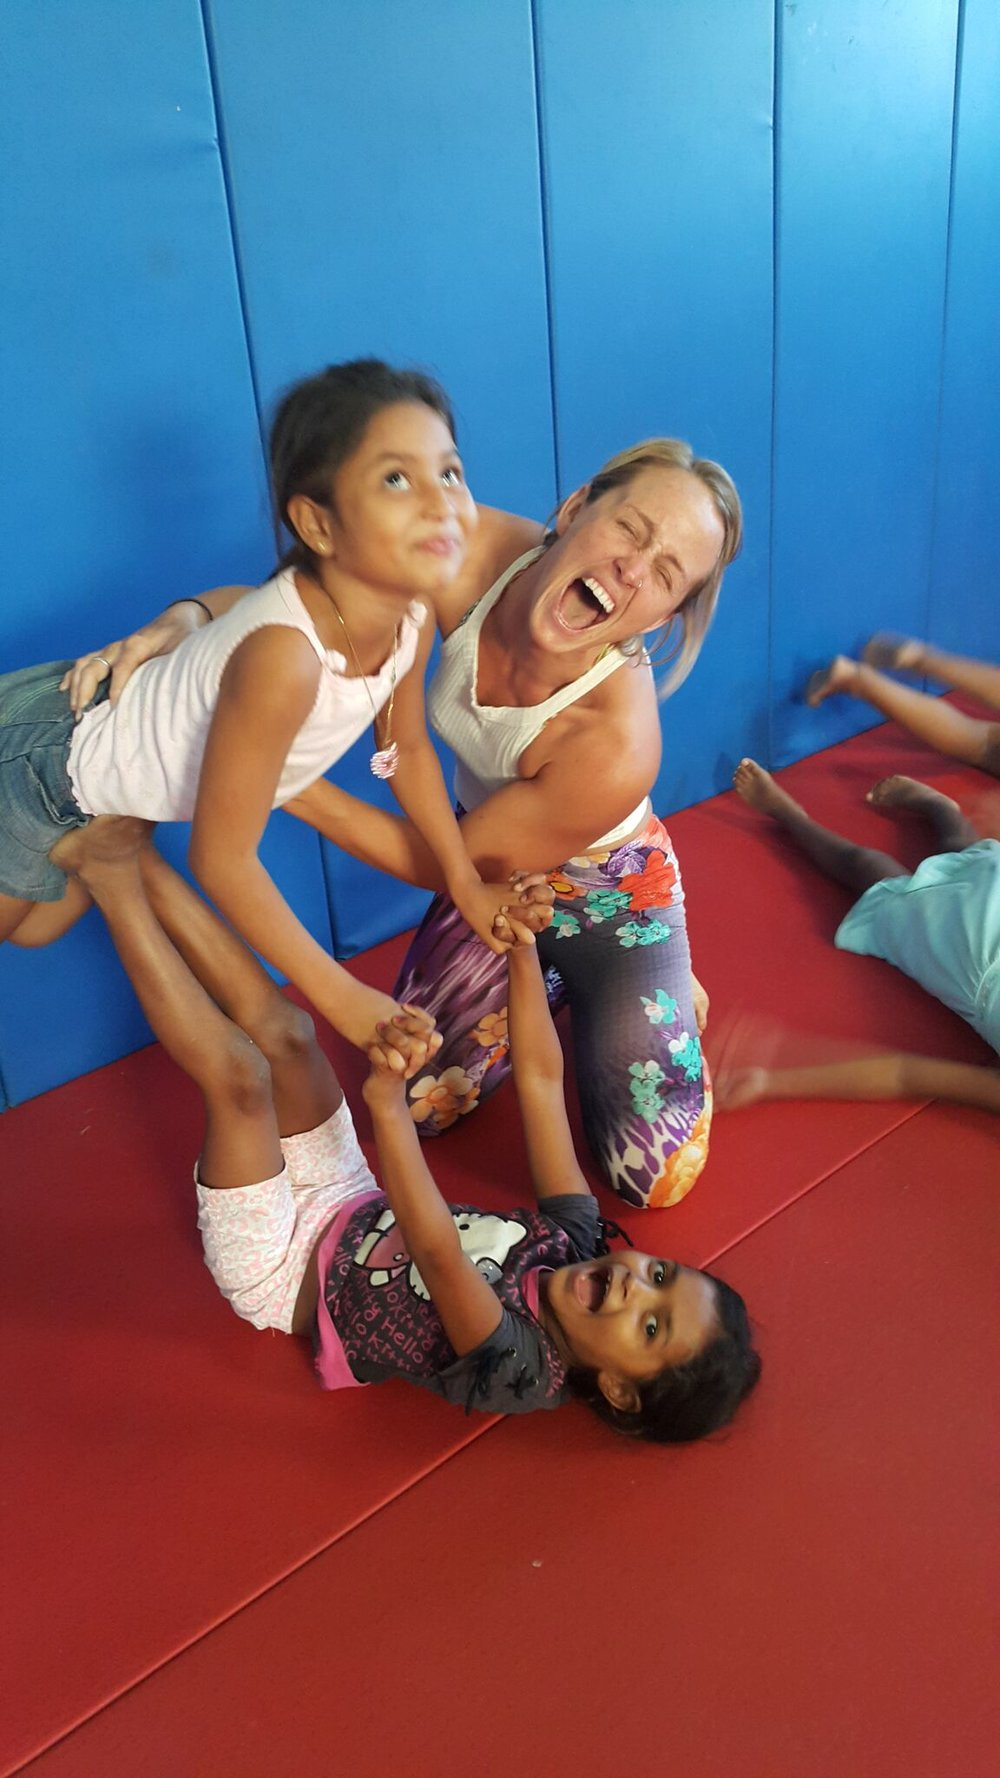 CircAsana - have hosted numerous retreats here at Magnific Rock and always involve the youth in community yoga and performances. They never fail to amaze us at their desire to learn new skills and have fun while doing it.